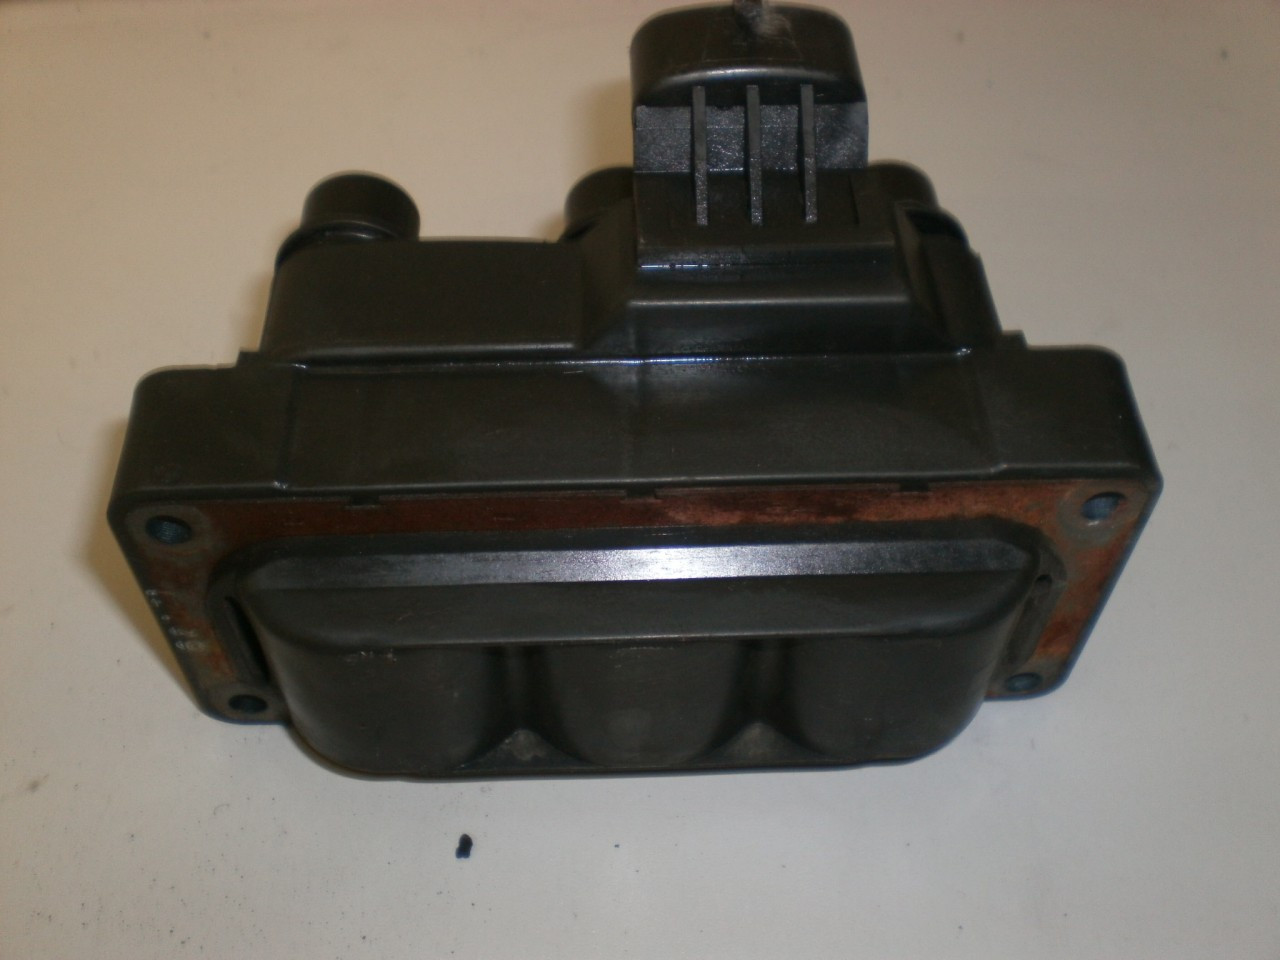 1994 1999 Ford Mustang Windstar Taurus 38 V6 Coil Pack 2003 Firing Order Larger More Photos